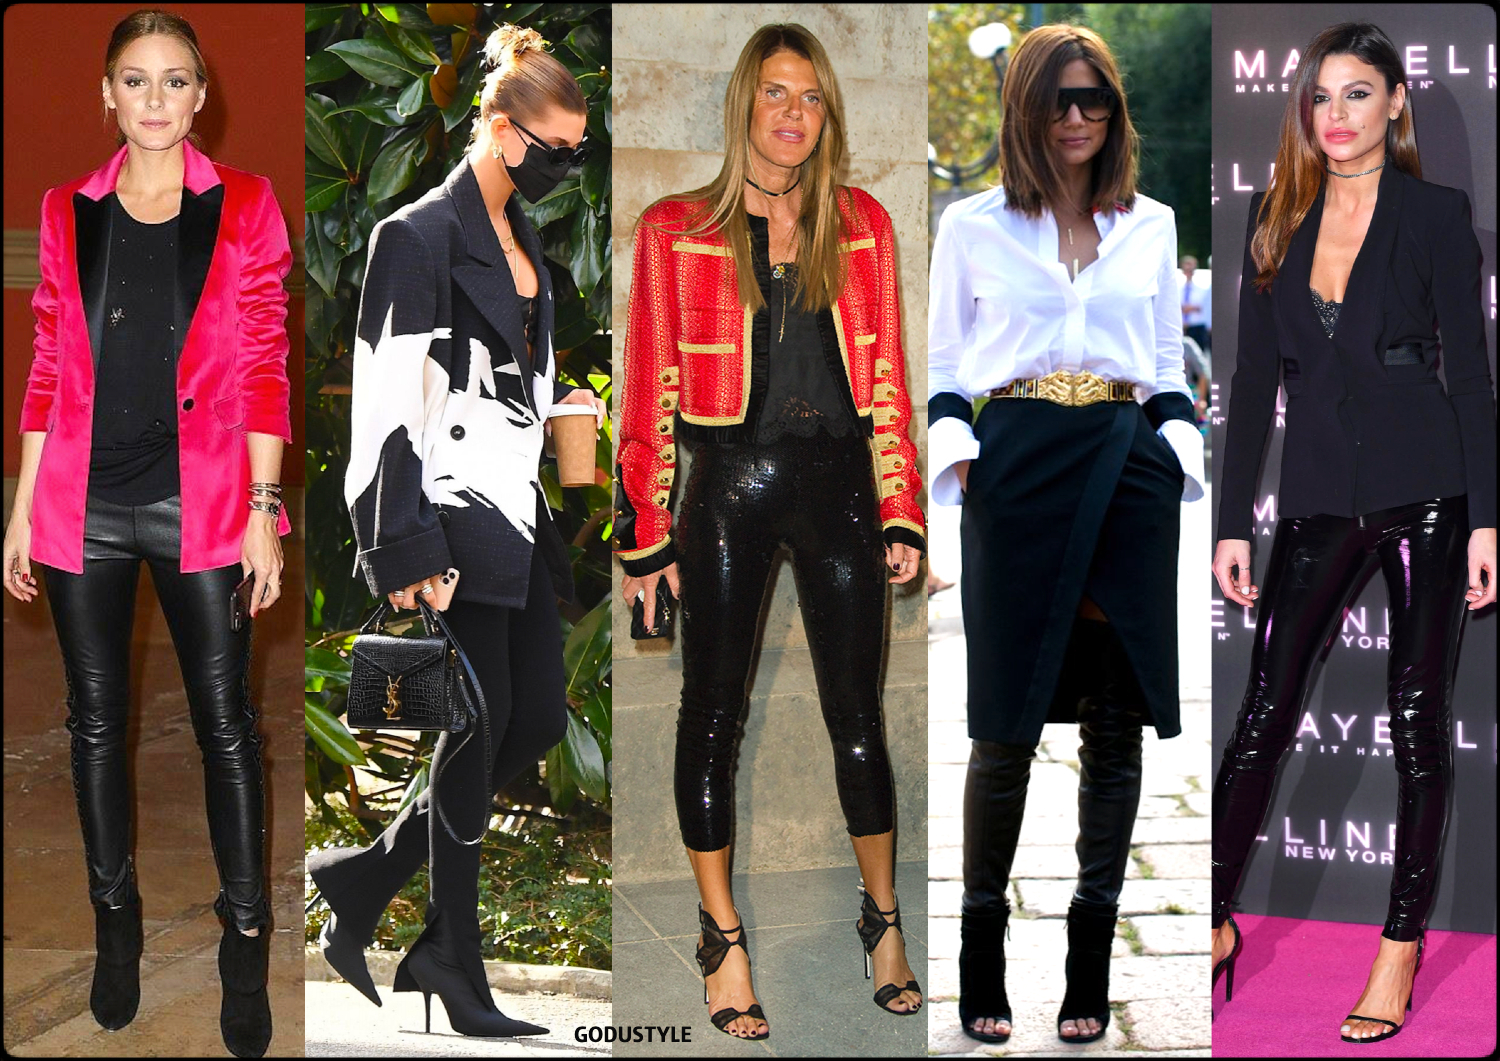 fashion-legging-must-have-party-look-style-holiday-2020-details-shopping-moda-fiesta-godustyle